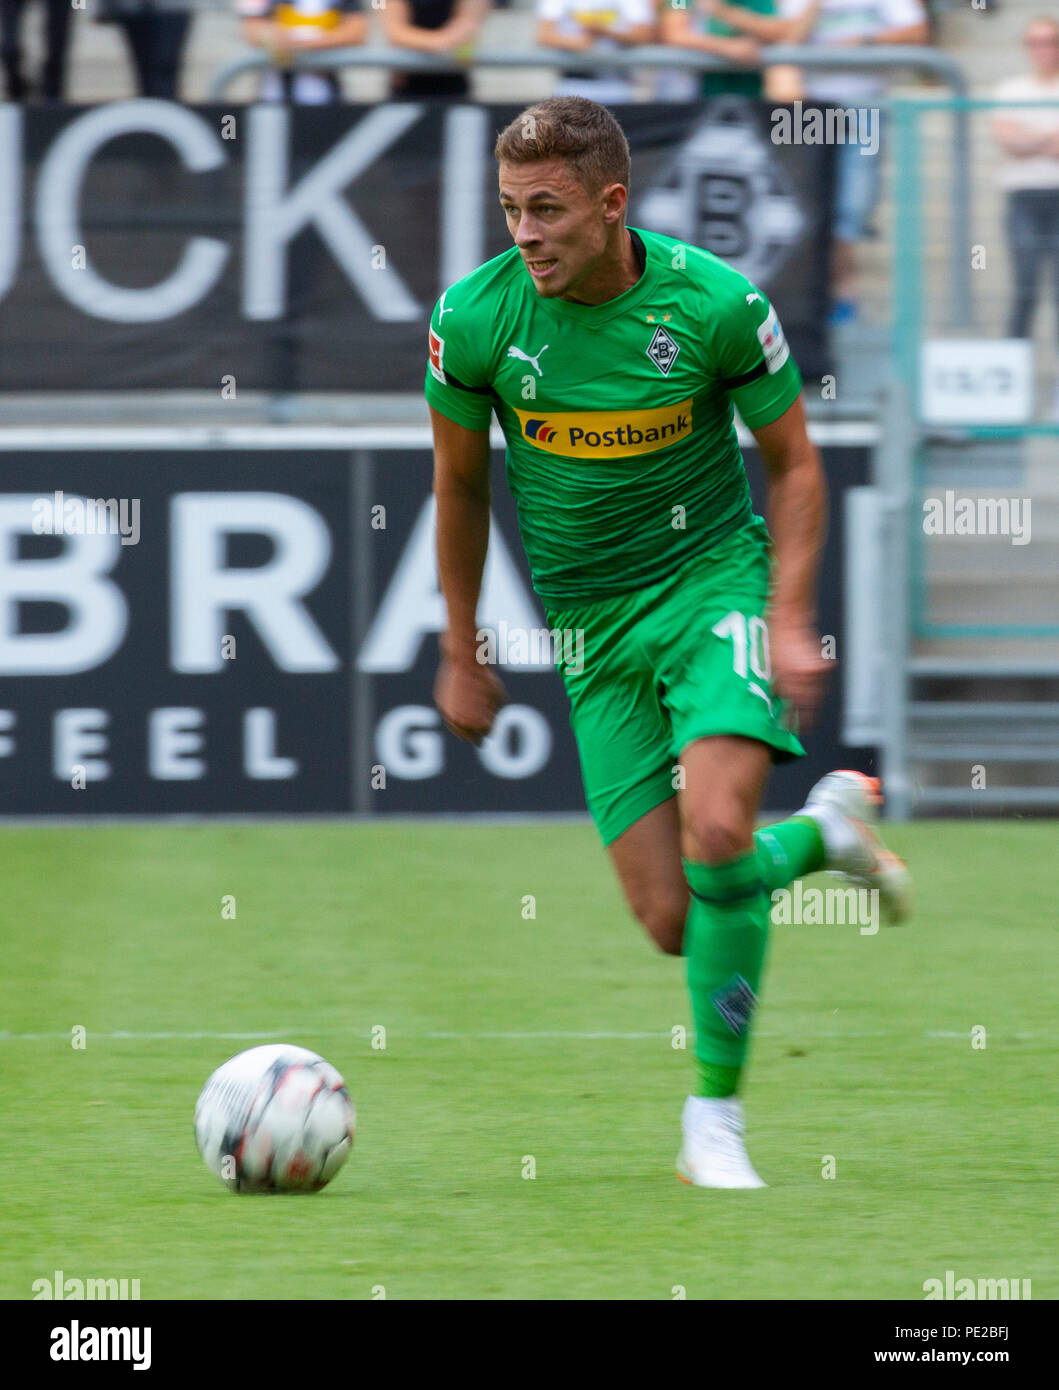 Moenchengladbach, Germany August 12 2018, friendly match, Borussia Moenchengladbach vs FC Wegberg-Beeck: Thorgan Hazard (BMG) in action.                Credit: Juergen Schwarz/Alamy Live News - Stock Image